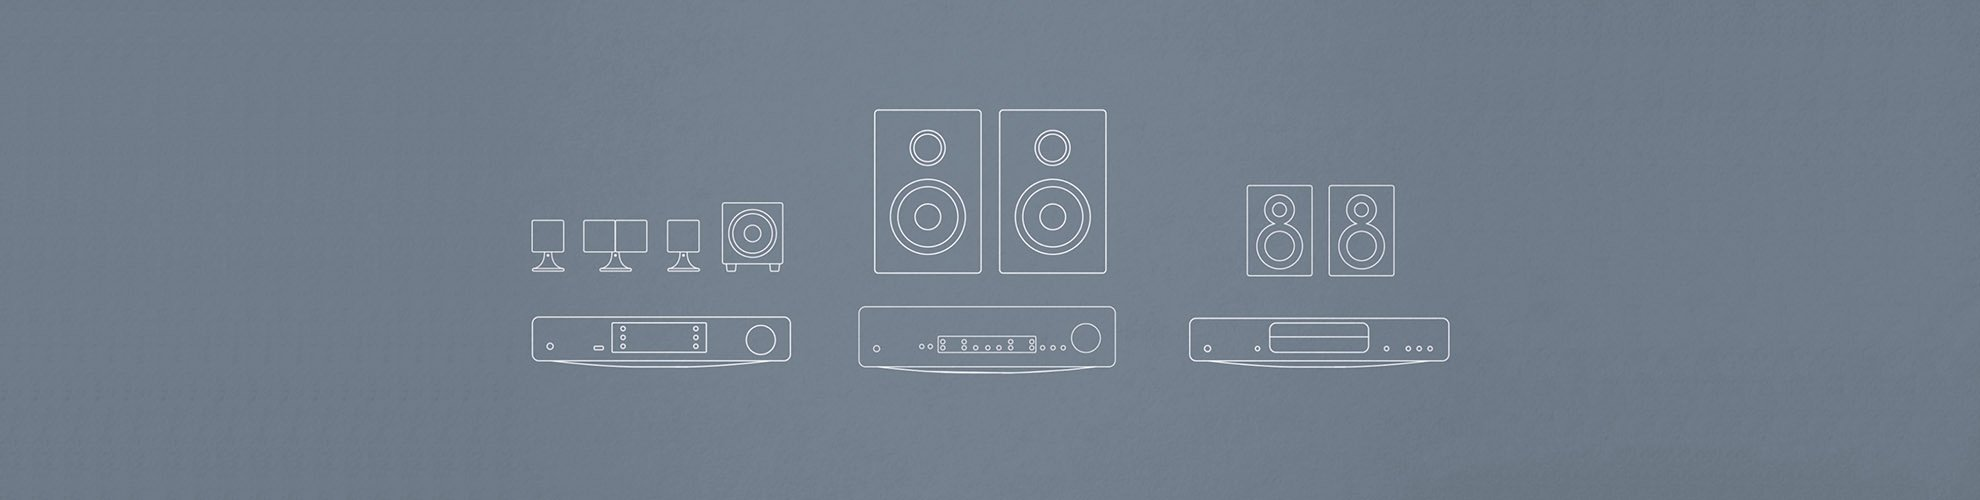 What Makes a Hi-Fi System? – A Beginners Guide to Hi-Fi